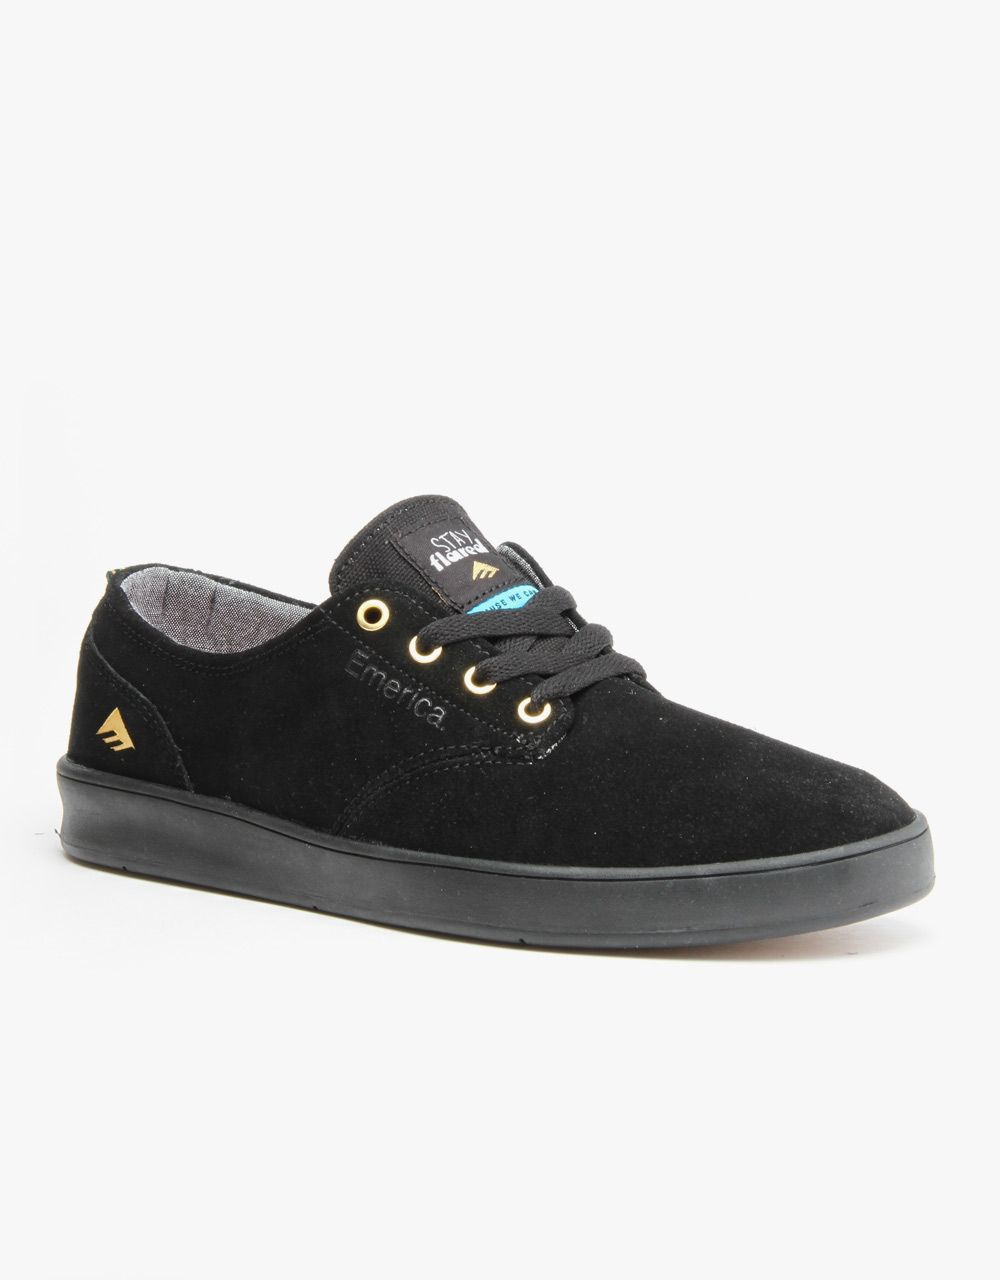 b0b02896a3 Emerica x Lakai Romero Laced Skate Shoes - Black Black